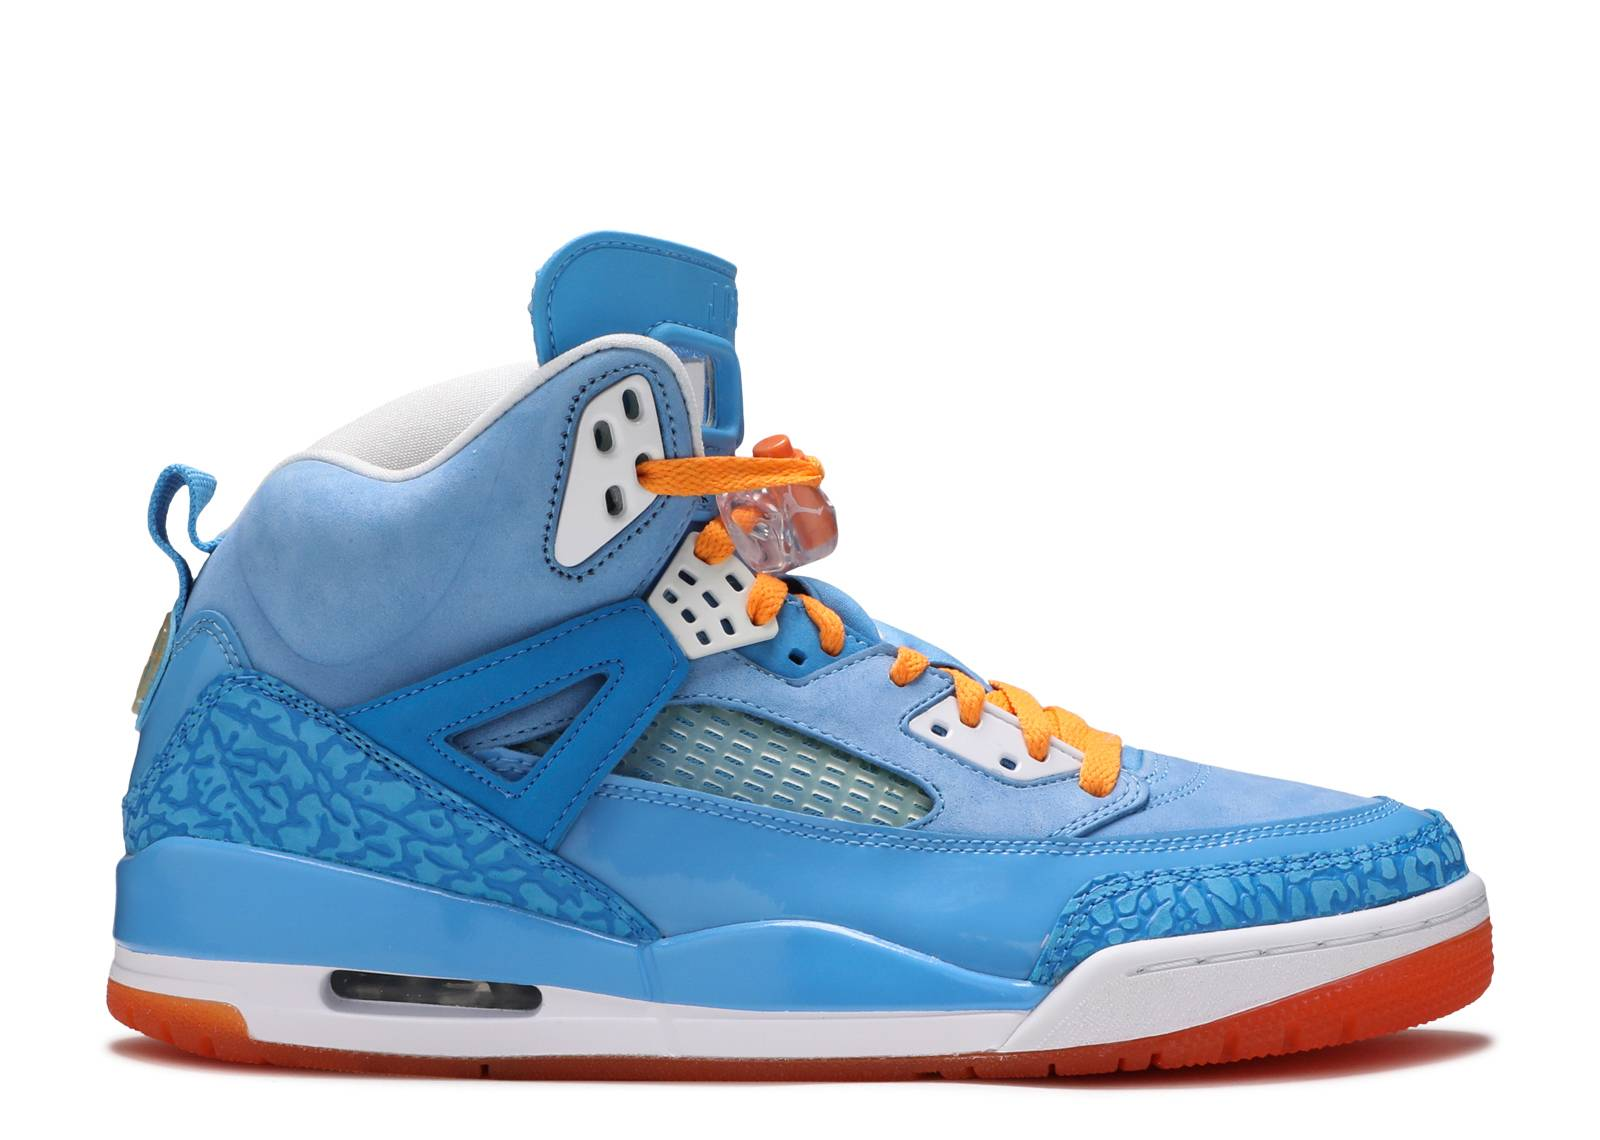 Spiz Ike Quot Year Of The Dragon Quot Unvrsty Bl White Itly Bl